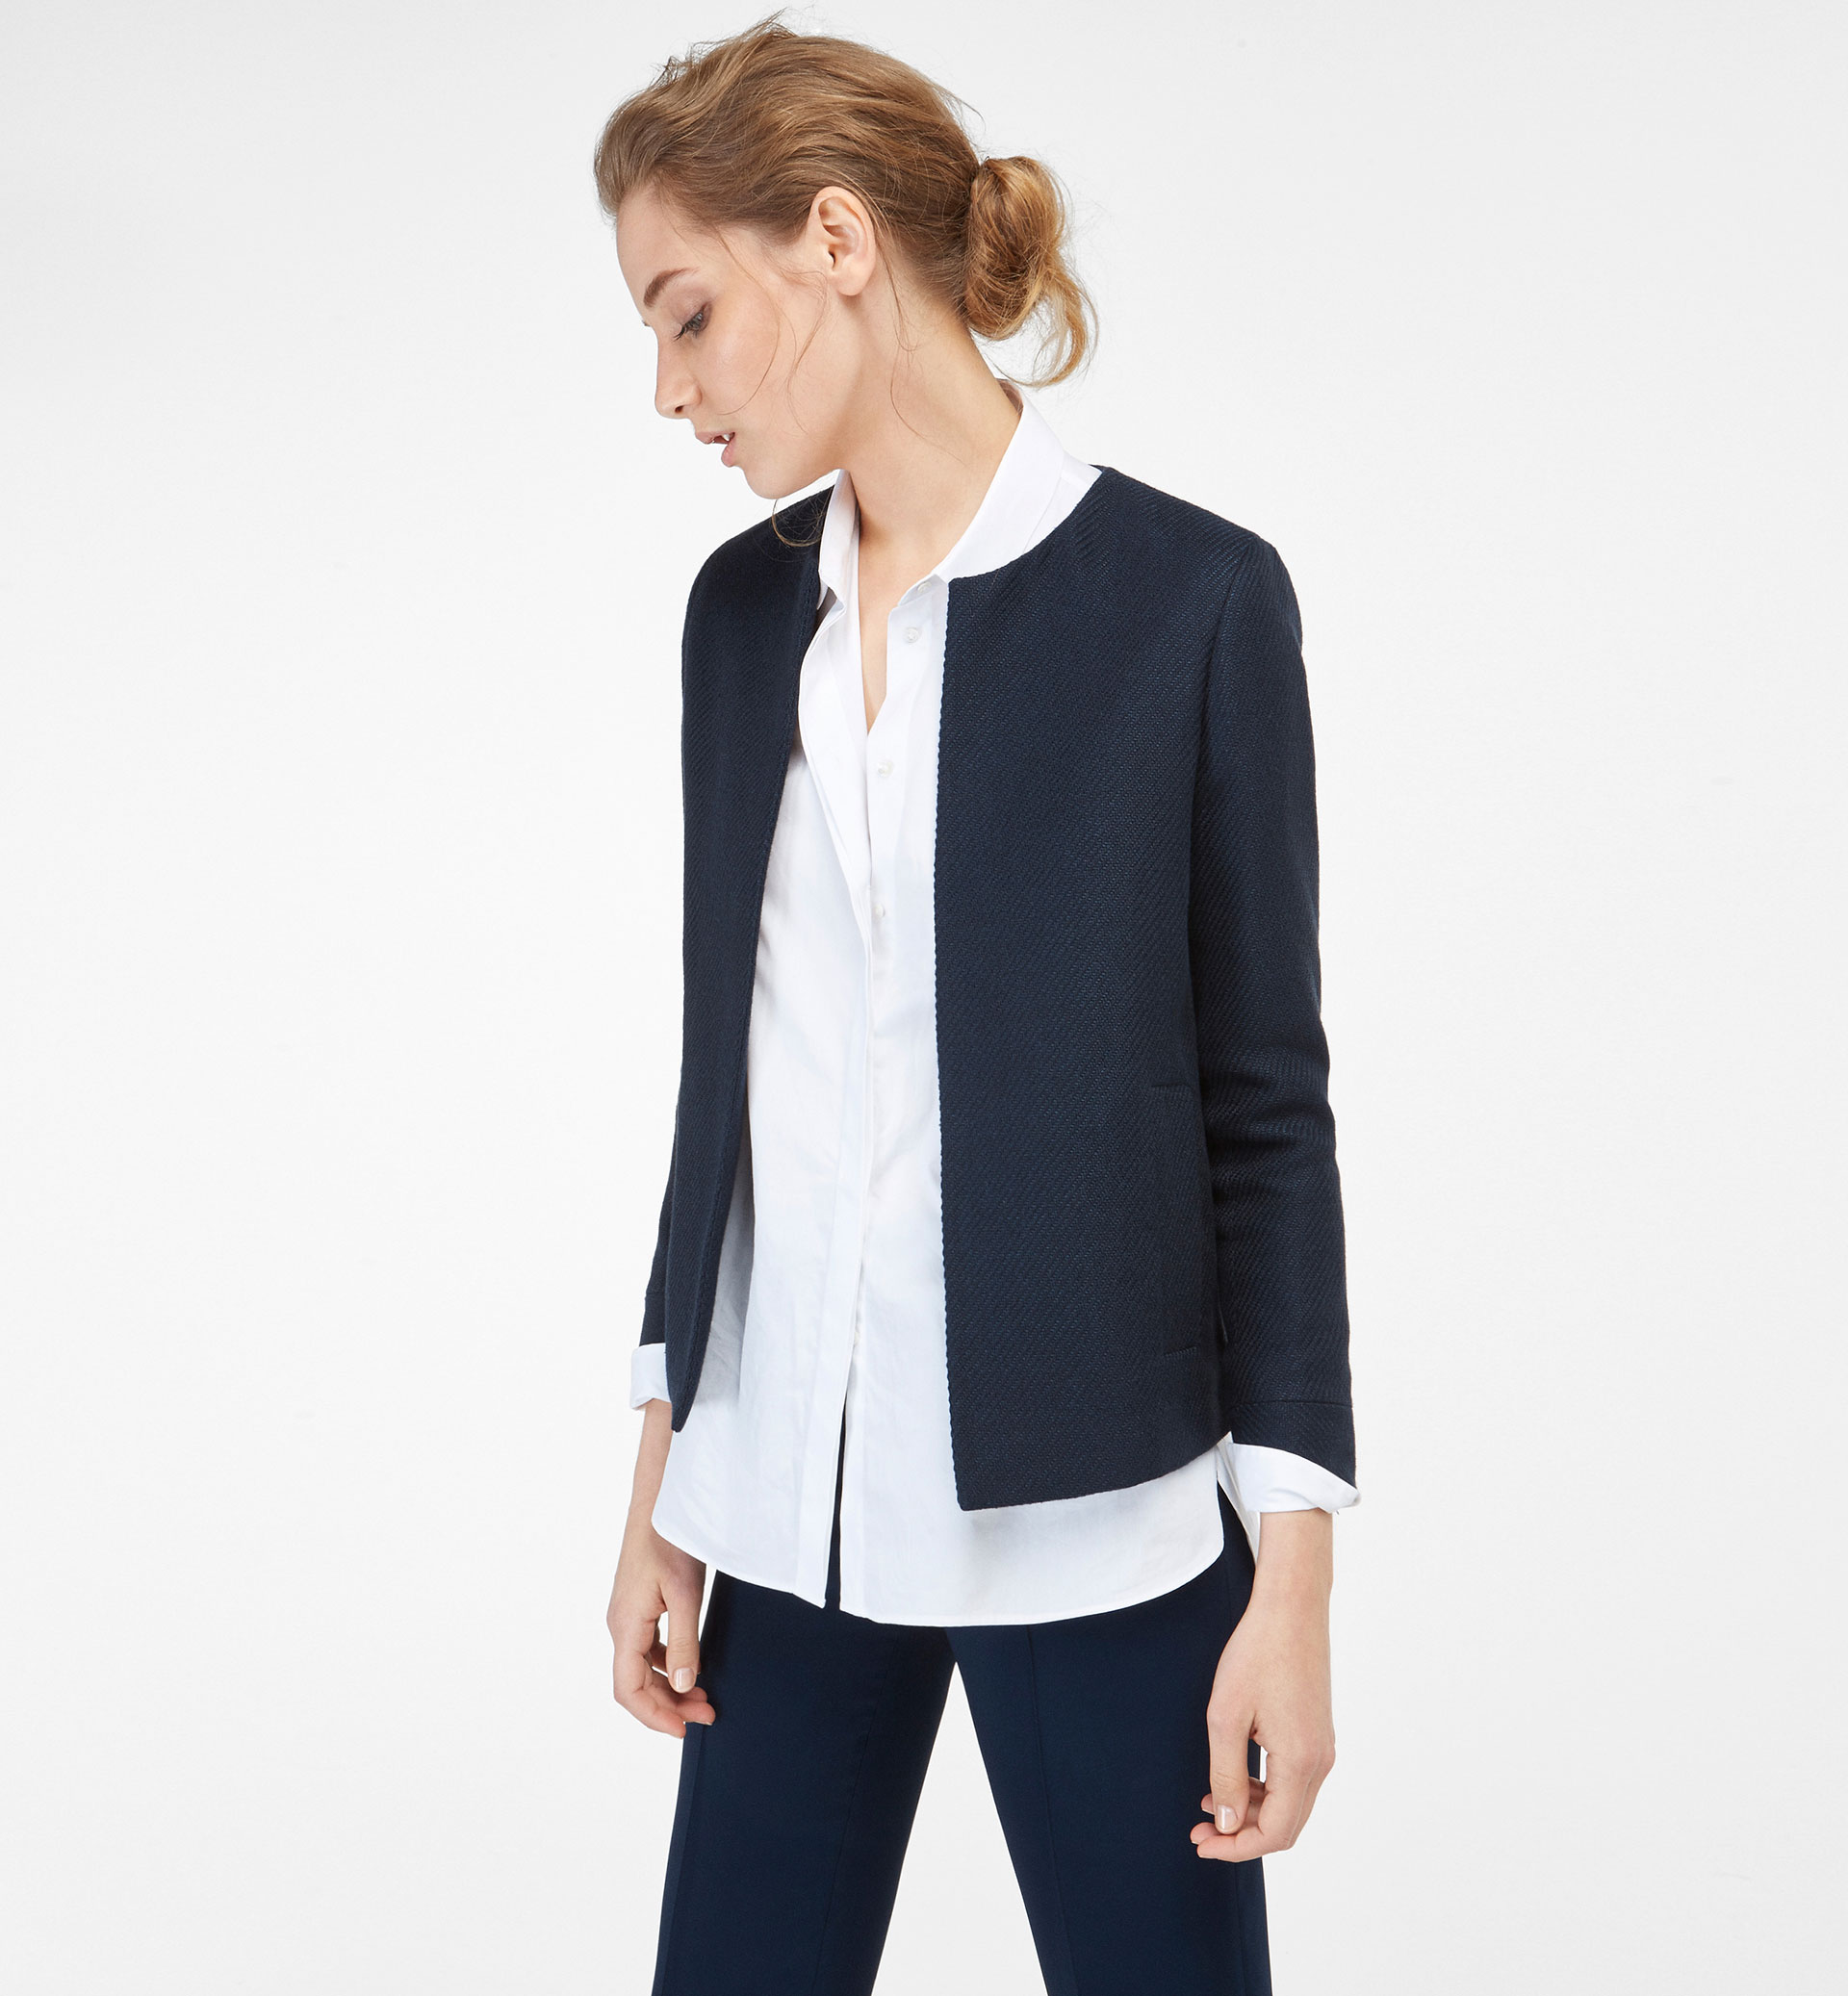 NAVY BLUE CAPE-STYLE JACKET